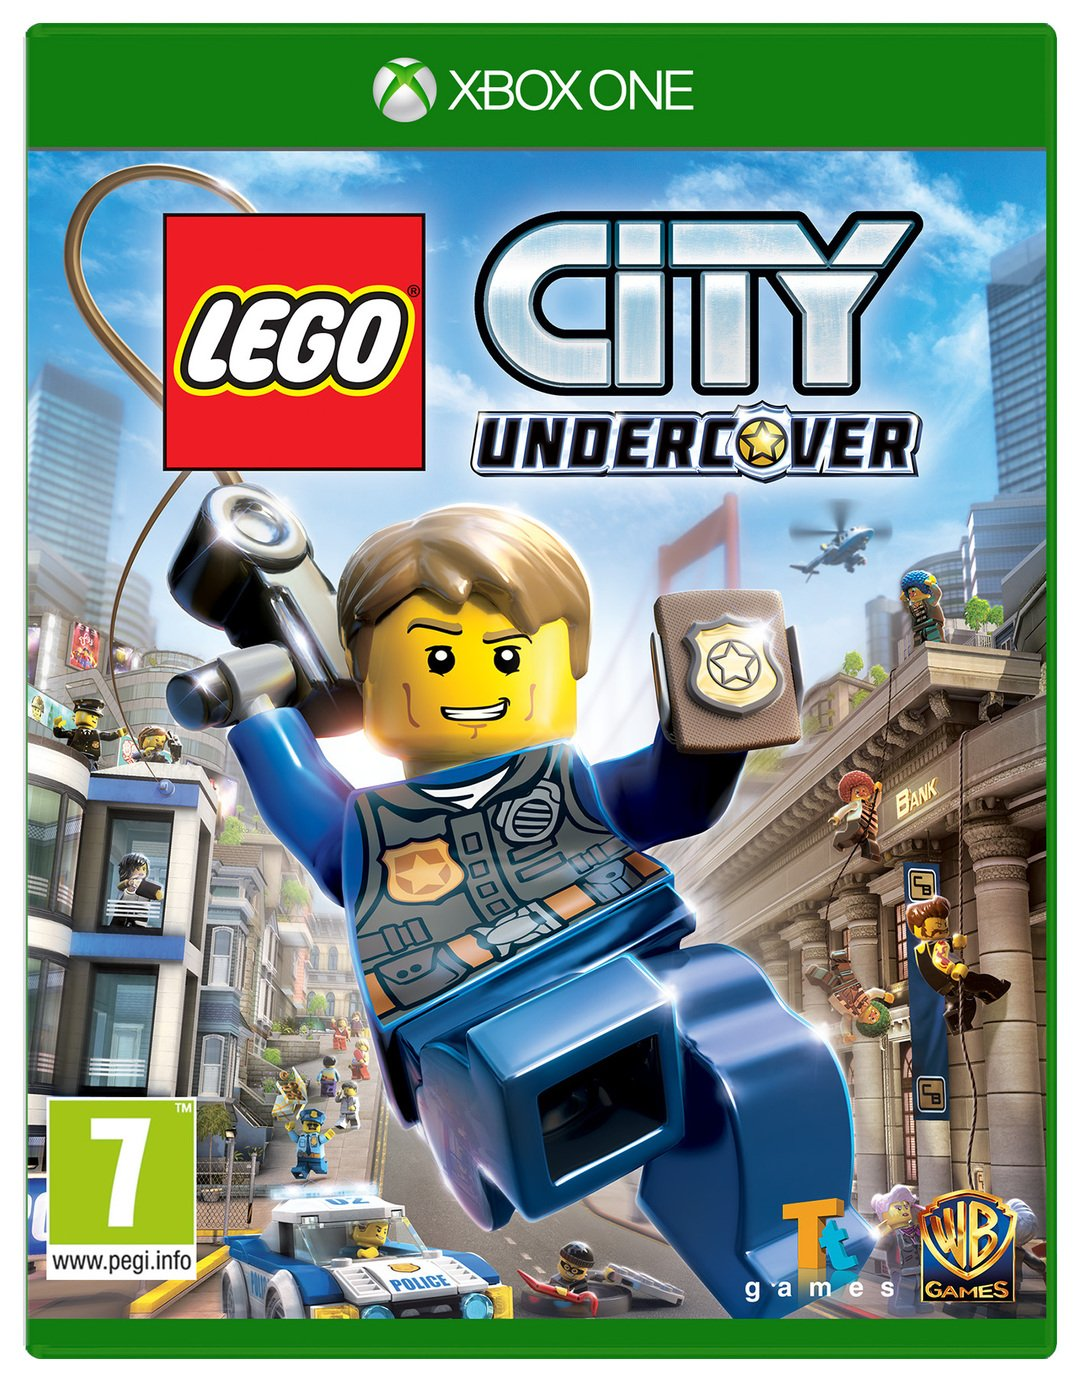 Lego Games For Xbox 1 : Lego city undercover xbox one game